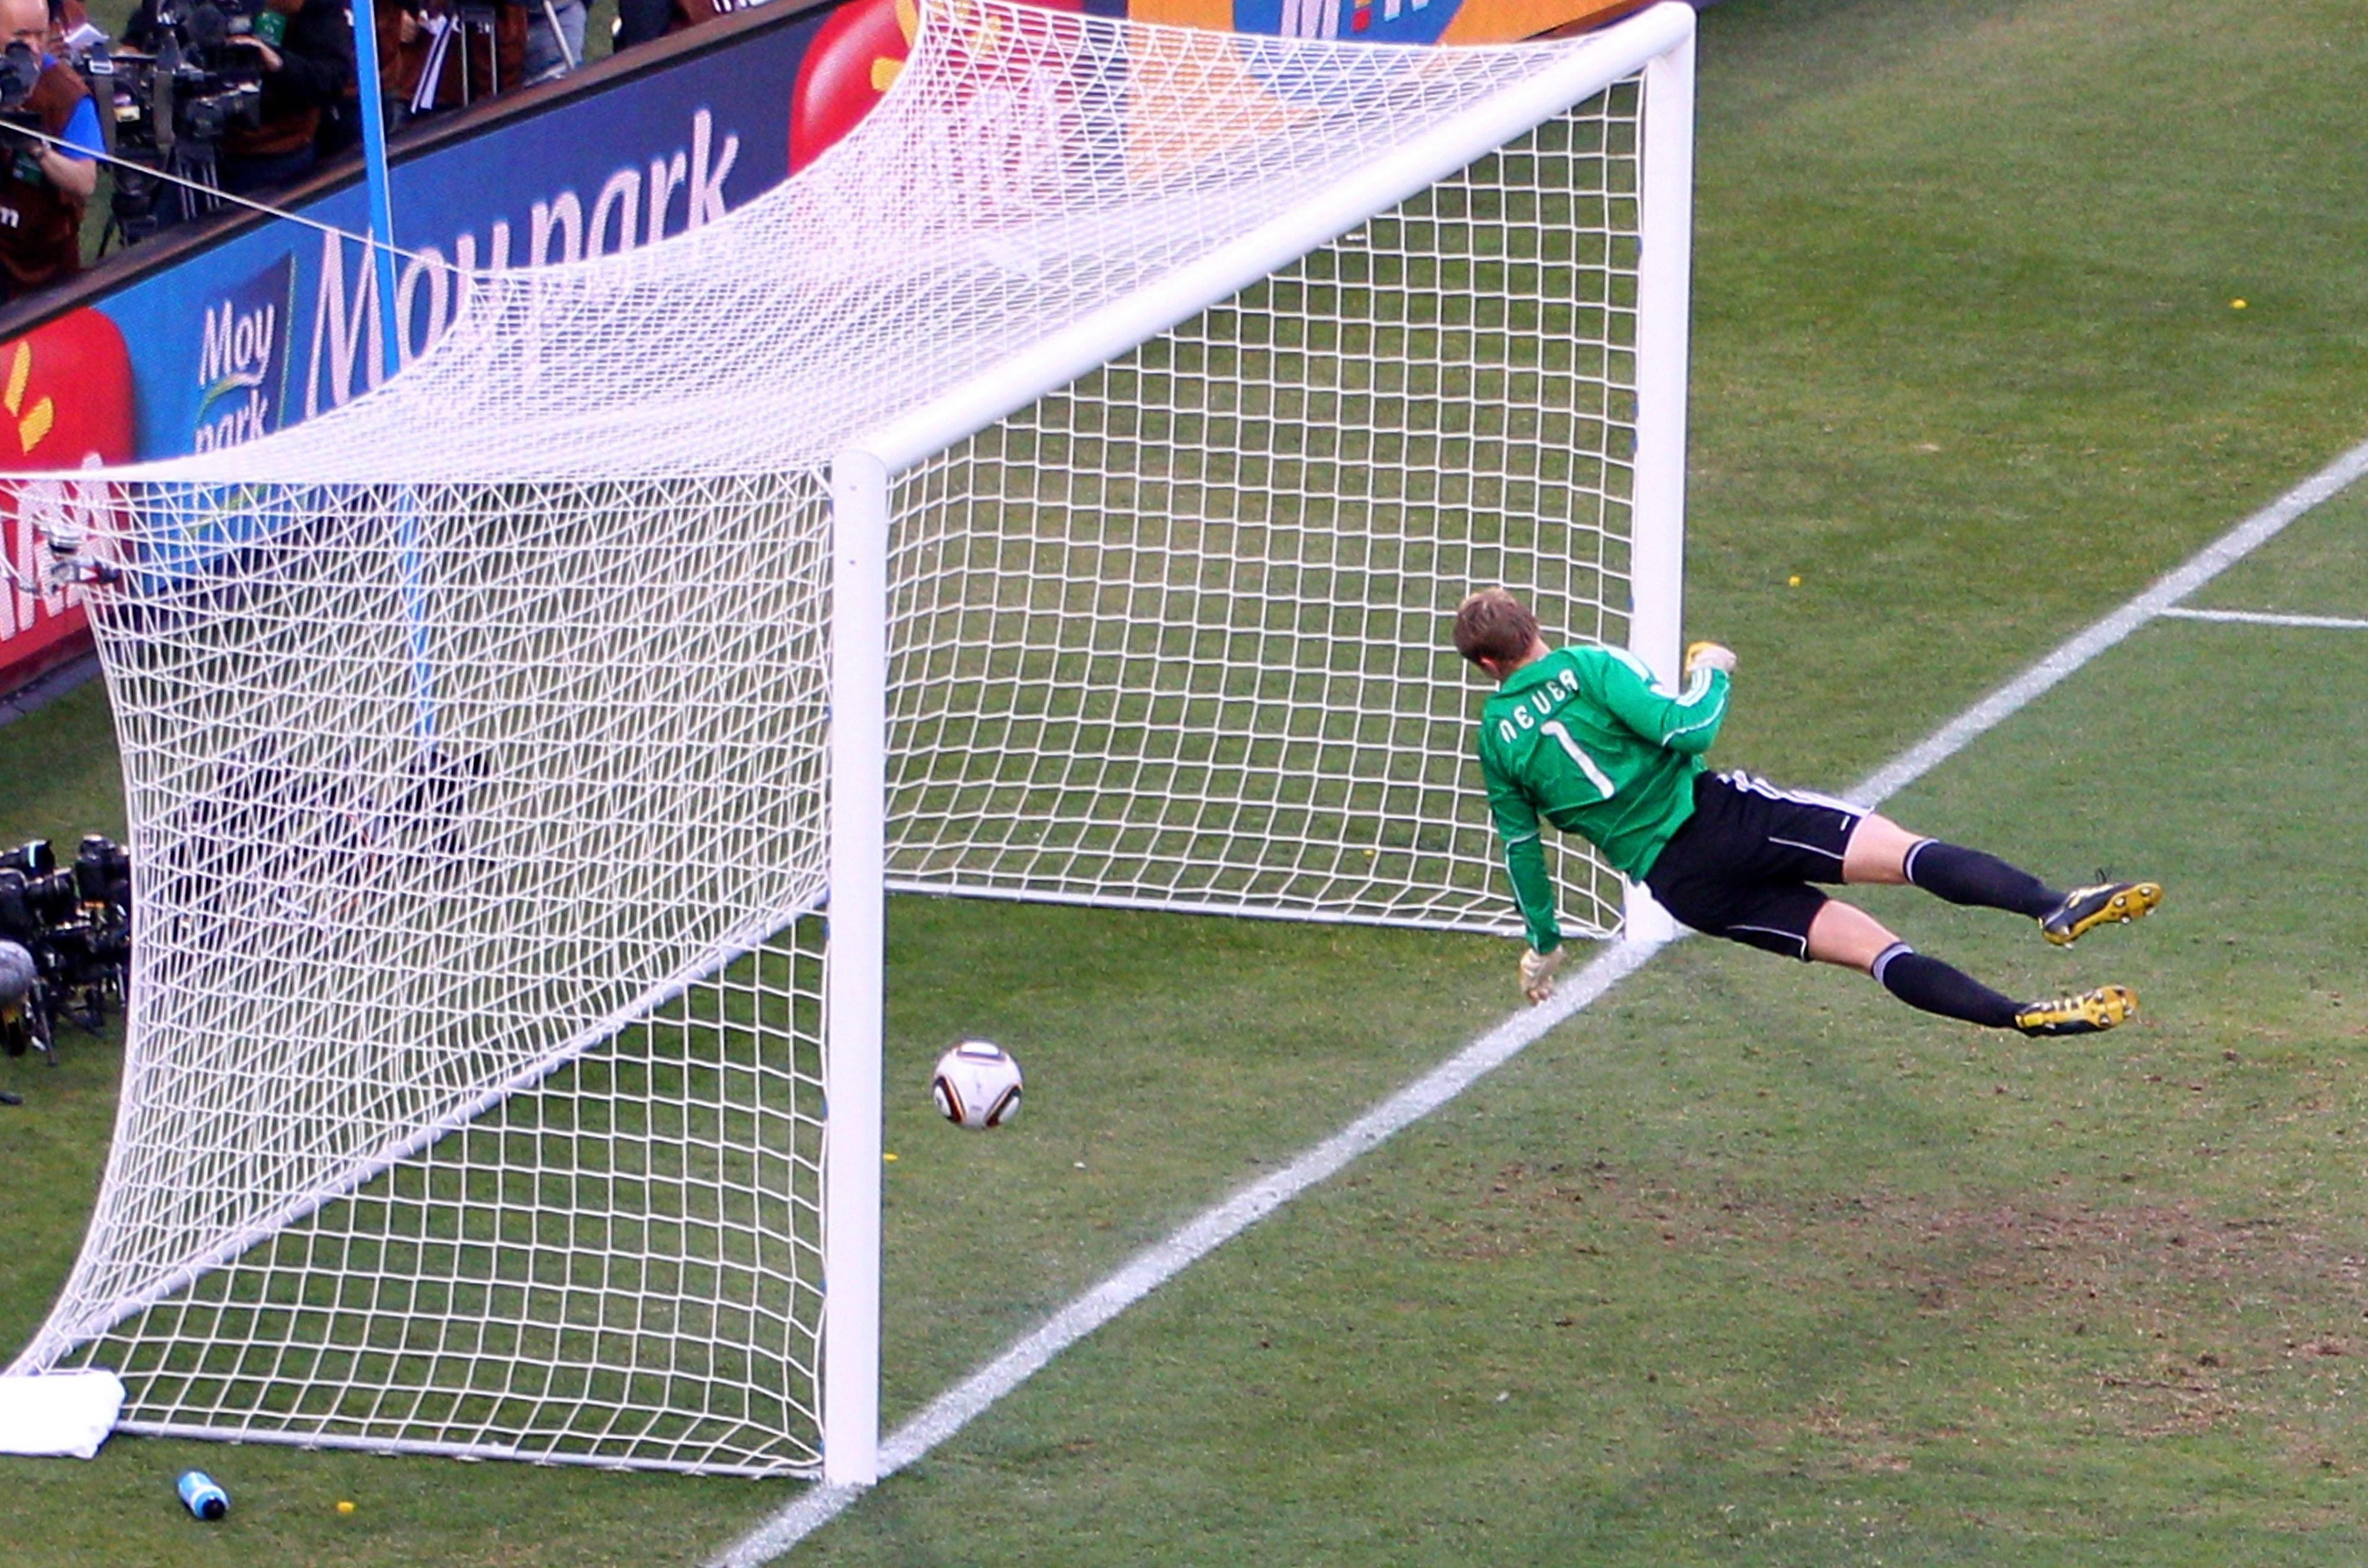 Frank Lampard's effort was clearly over the goal line - but a lack of technology meant no goal was given